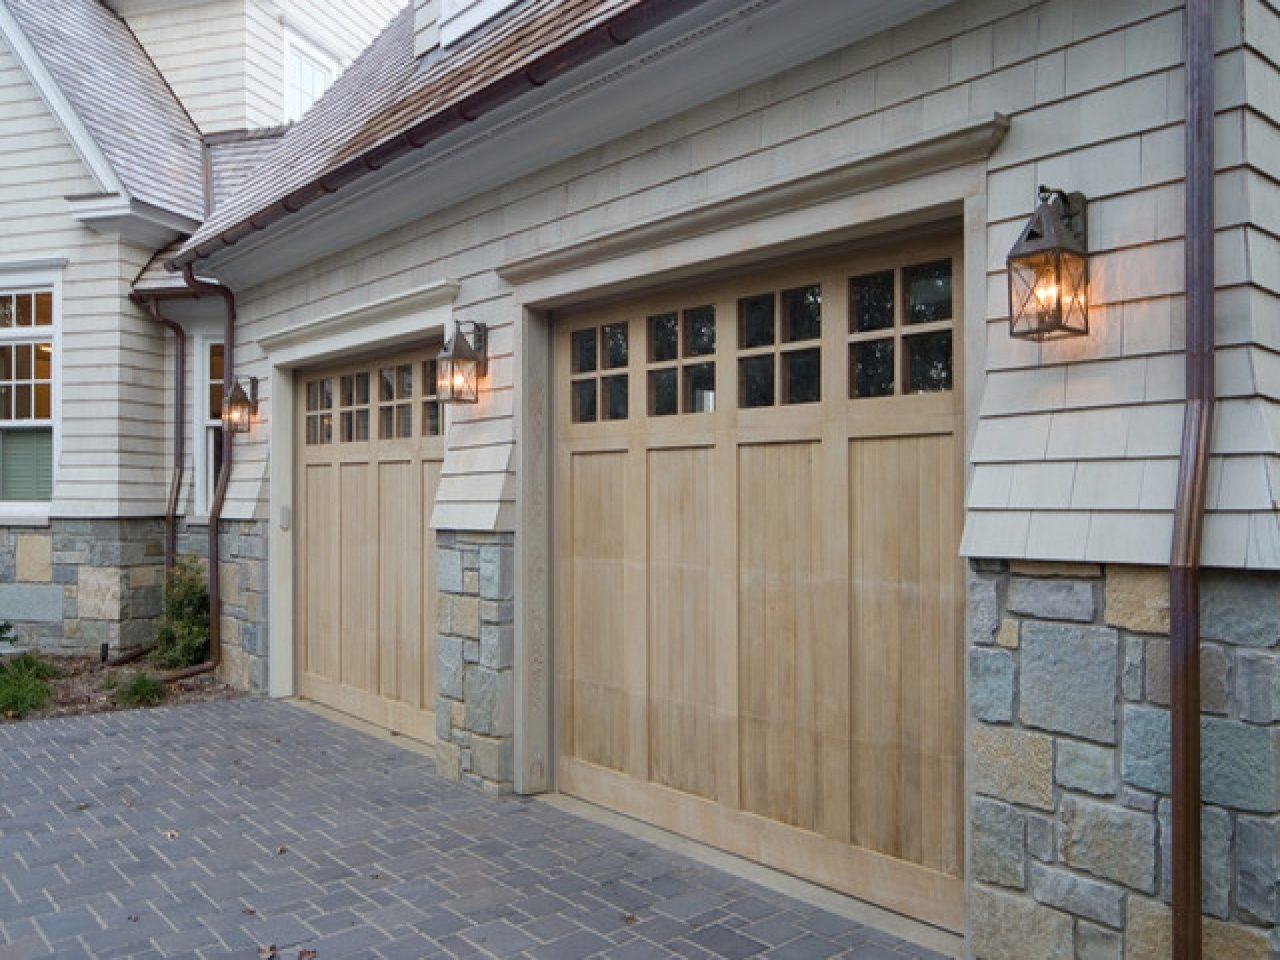 Inspiration about 40 Outdoor Lights For Garage Door, Garage Transitional Outdoor Wall In Outdoor Wall Garage Lights (#3 of 15)